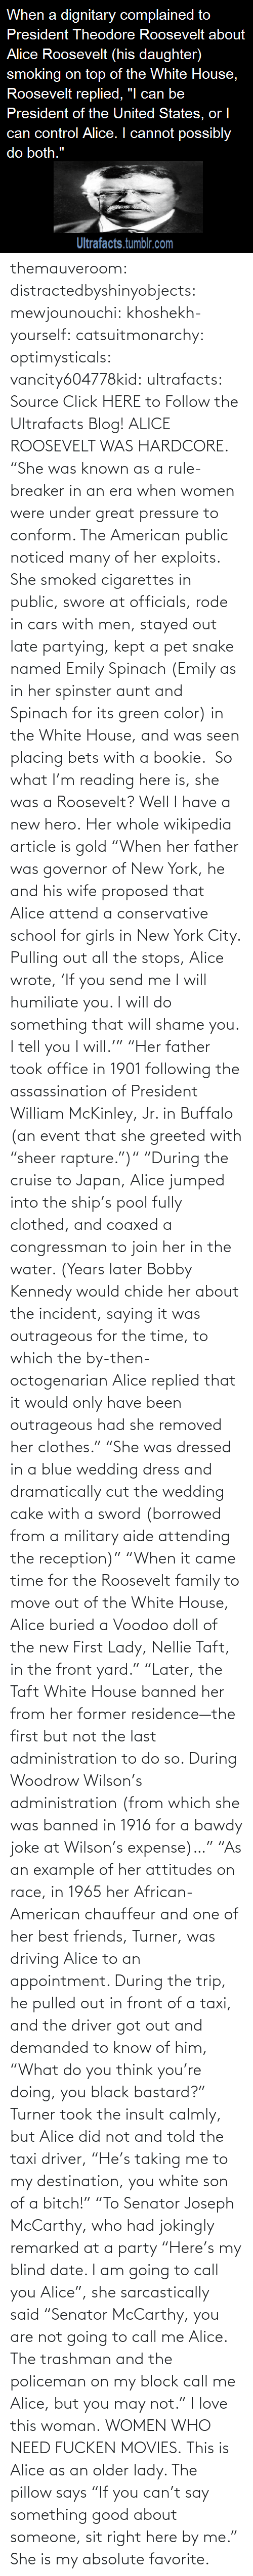 "White House: themauveroom: distractedbyshinyobjects:  mewjounouchi:  khoshekh-yourself:  catsuitmonarchy:  optimysticals:  vancity604778kid:  ultrafacts:     Source Click HERE to Follow the Ultrafacts Blog!     ALICE ROOSEVELT WAS HARDCORE. ""She was known as a rule-breaker in an era when women were under great pressure to conform. The American public noticed many of her exploits. She smoked cigarettes in public, swore at officials, rode in cars with men, stayed out late partying, kept a pet snake named Emily Spinach (Emily as in her spinster aunt and Spinach for its green color) in the White House, and was seen placing bets with a bookie.    So what I'm reading here is, she was a Roosevelt?  Well I have a new hero.  Her whole wikipedia article is gold ""When her father was governor of New York, he and his wife proposed that Alice attend a conservative school for girls in New York City. Pulling out all the stops, Alice wrote, 'If you send me I will humiliate you. I will do something that will shame you. I tell you I will.'"" ""Her father took office in 1901 following the assassination of President William McKinley, Jr. in Buffalo (an event that she greeted with ""sheer rapture."")"" ""During the cruise to Japan, Alice jumped into the ship's pool fully clothed, and coaxed a congressman to join her in the water. (Years later Bobby Kennedy would chide her about the incident, saying it was outrageous for the time, to which the by-then-octogenarian Alice replied that it would only have been outrageous had she removed her clothes."" ""She was dressed in a blue wedding dress and dramatically cut the wedding cake with a sword (borrowed from a military aide attending the reception)"" ""When it came time for the Roosevelt family to move out of the White House, Alice buried a Voodoo doll of the new First Lady, Nellie Taft, in the front yard."" ""Later, the Taft White House banned her from her former residence—the first but not the last administration to do so. During Woodrow Wilson's administration (from which she was banned in 1916 for a bawdy joke at Wilson's expense)…"" ""As an example of her attitudes on race, in 1965 her African-American chauffeur and one of her best friends, Turner, was driving Alice to an appointment. During the trip, he pulled out in front of a taxi, and the driver got out and demanded to know of him, ""What do you think you're doing, you black bastard?"" Turner took the insult calmly, but Alice did not and told the taxi driver, ""He's taking me to my destination, you white son of a bitch!"" ""To Senator Joseph McCarthy, who had jokingly remarked at a party ""Here's my blind date. I am going to call you Alice"", she sarcastically said ""Senator McCarthy, you are not going to call me Alice. The trashman and the policeman on my block call me Alice, but you may not.""  I love this woman.  WOMEN WHO NEED FUCKEN MOVIES.   This is Alice as an older lady. The pillow says ""If you can't say something good about someone, sit right here by me.""  She is my absolute favorite."